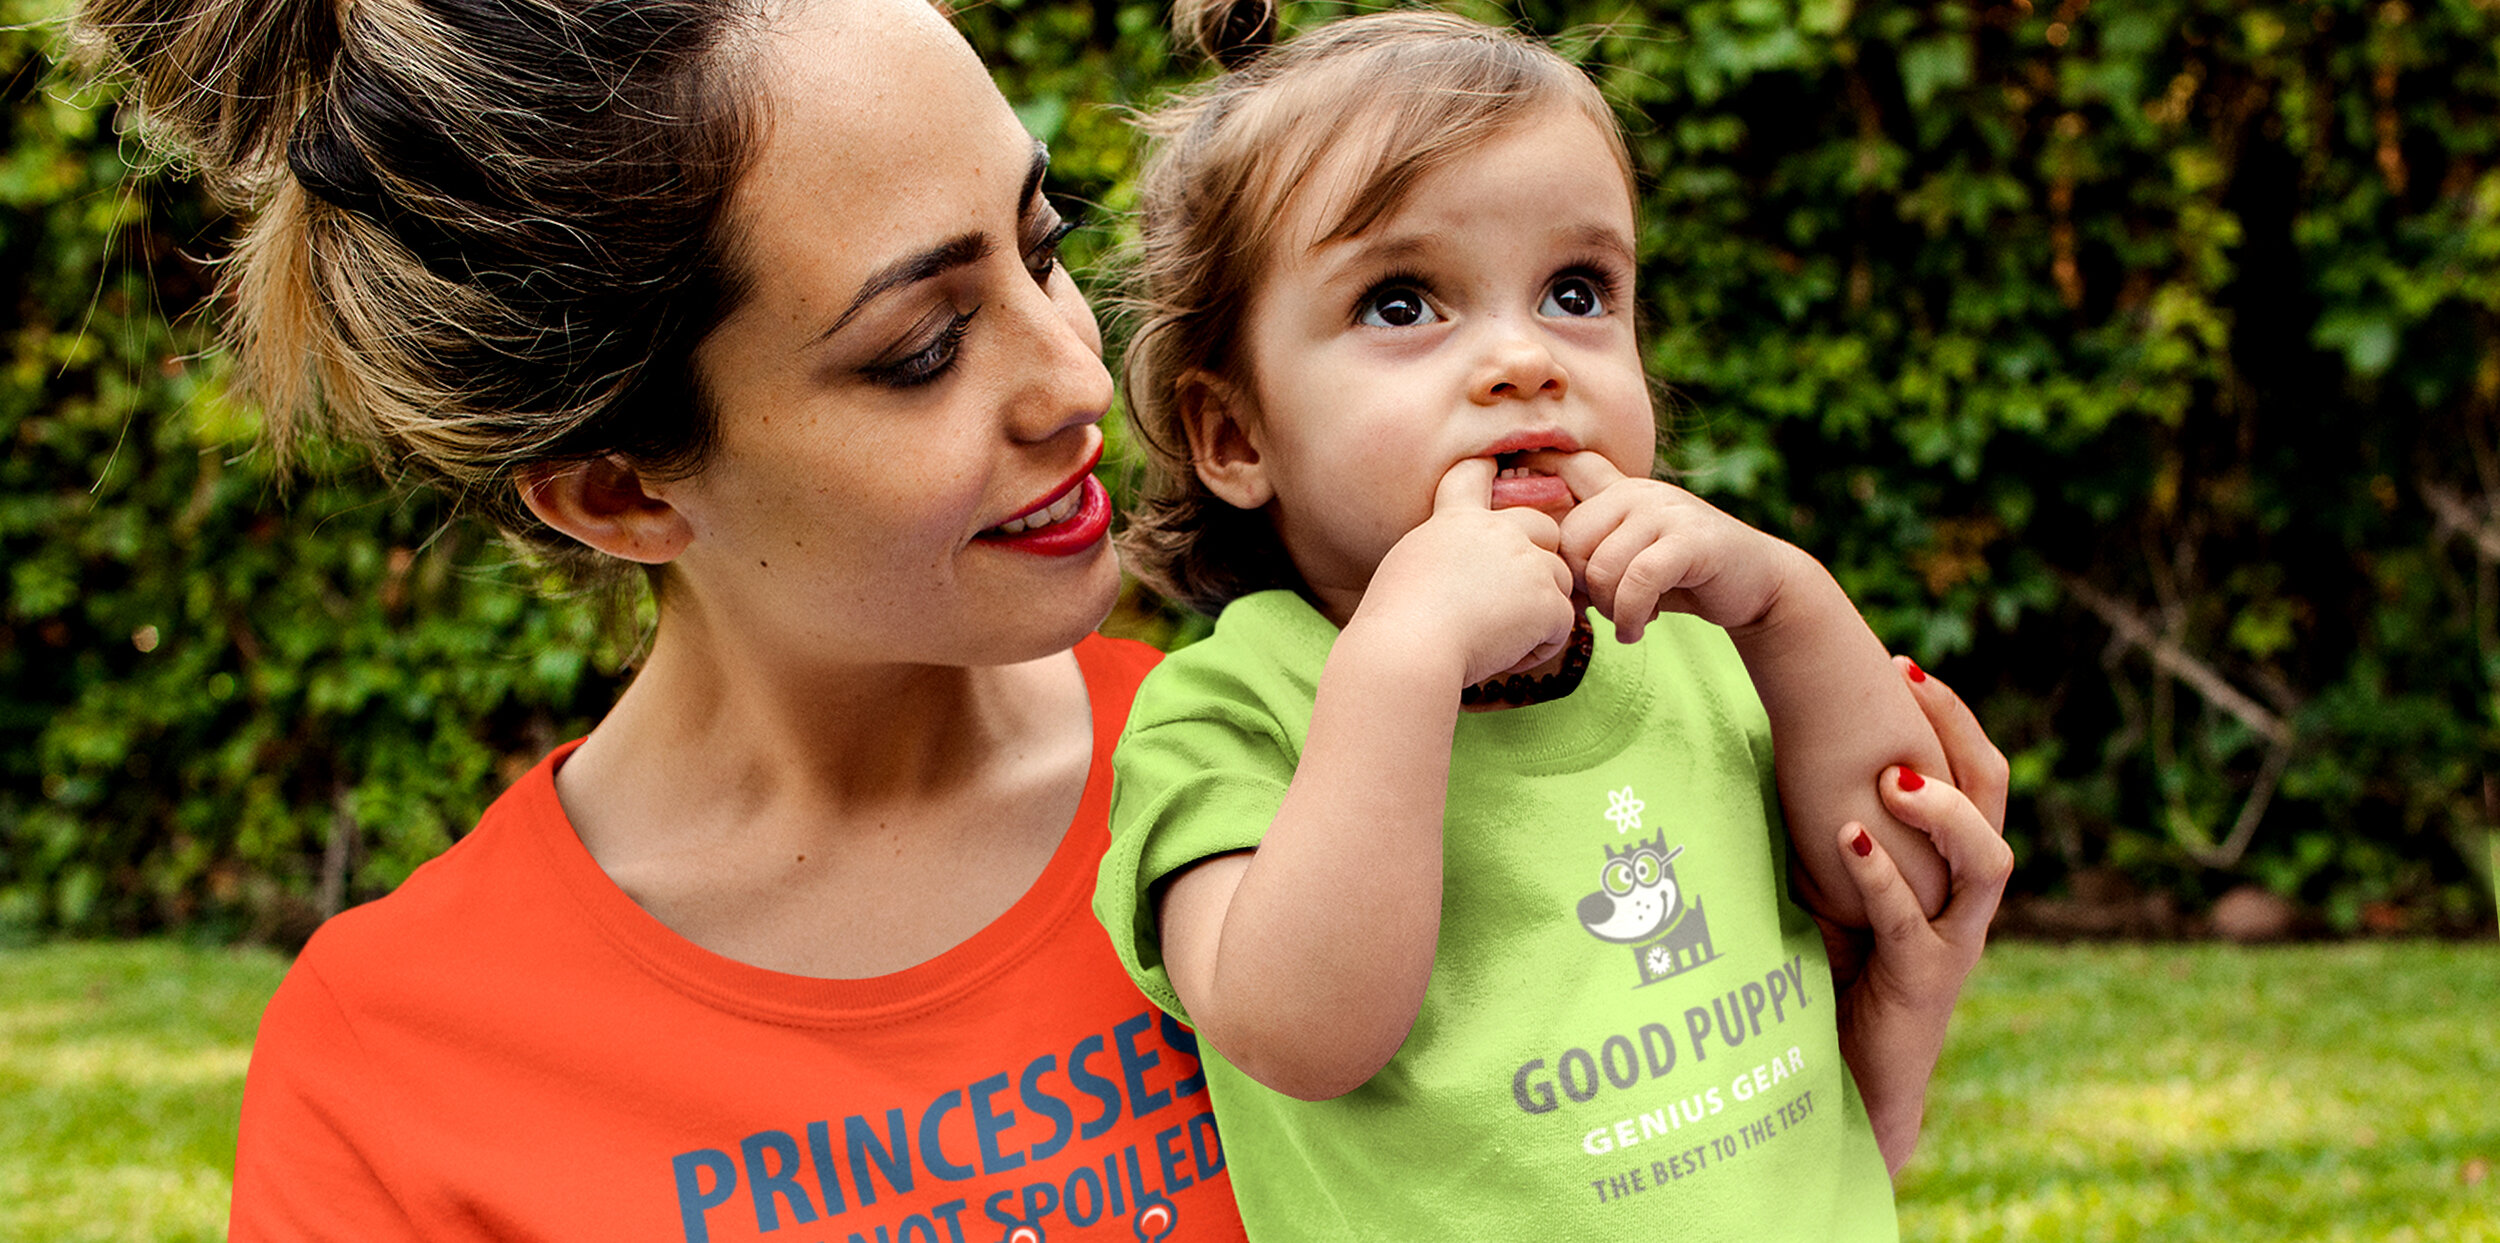 Infants-Cotton-Good-Puppy-T-Shirts.jpg